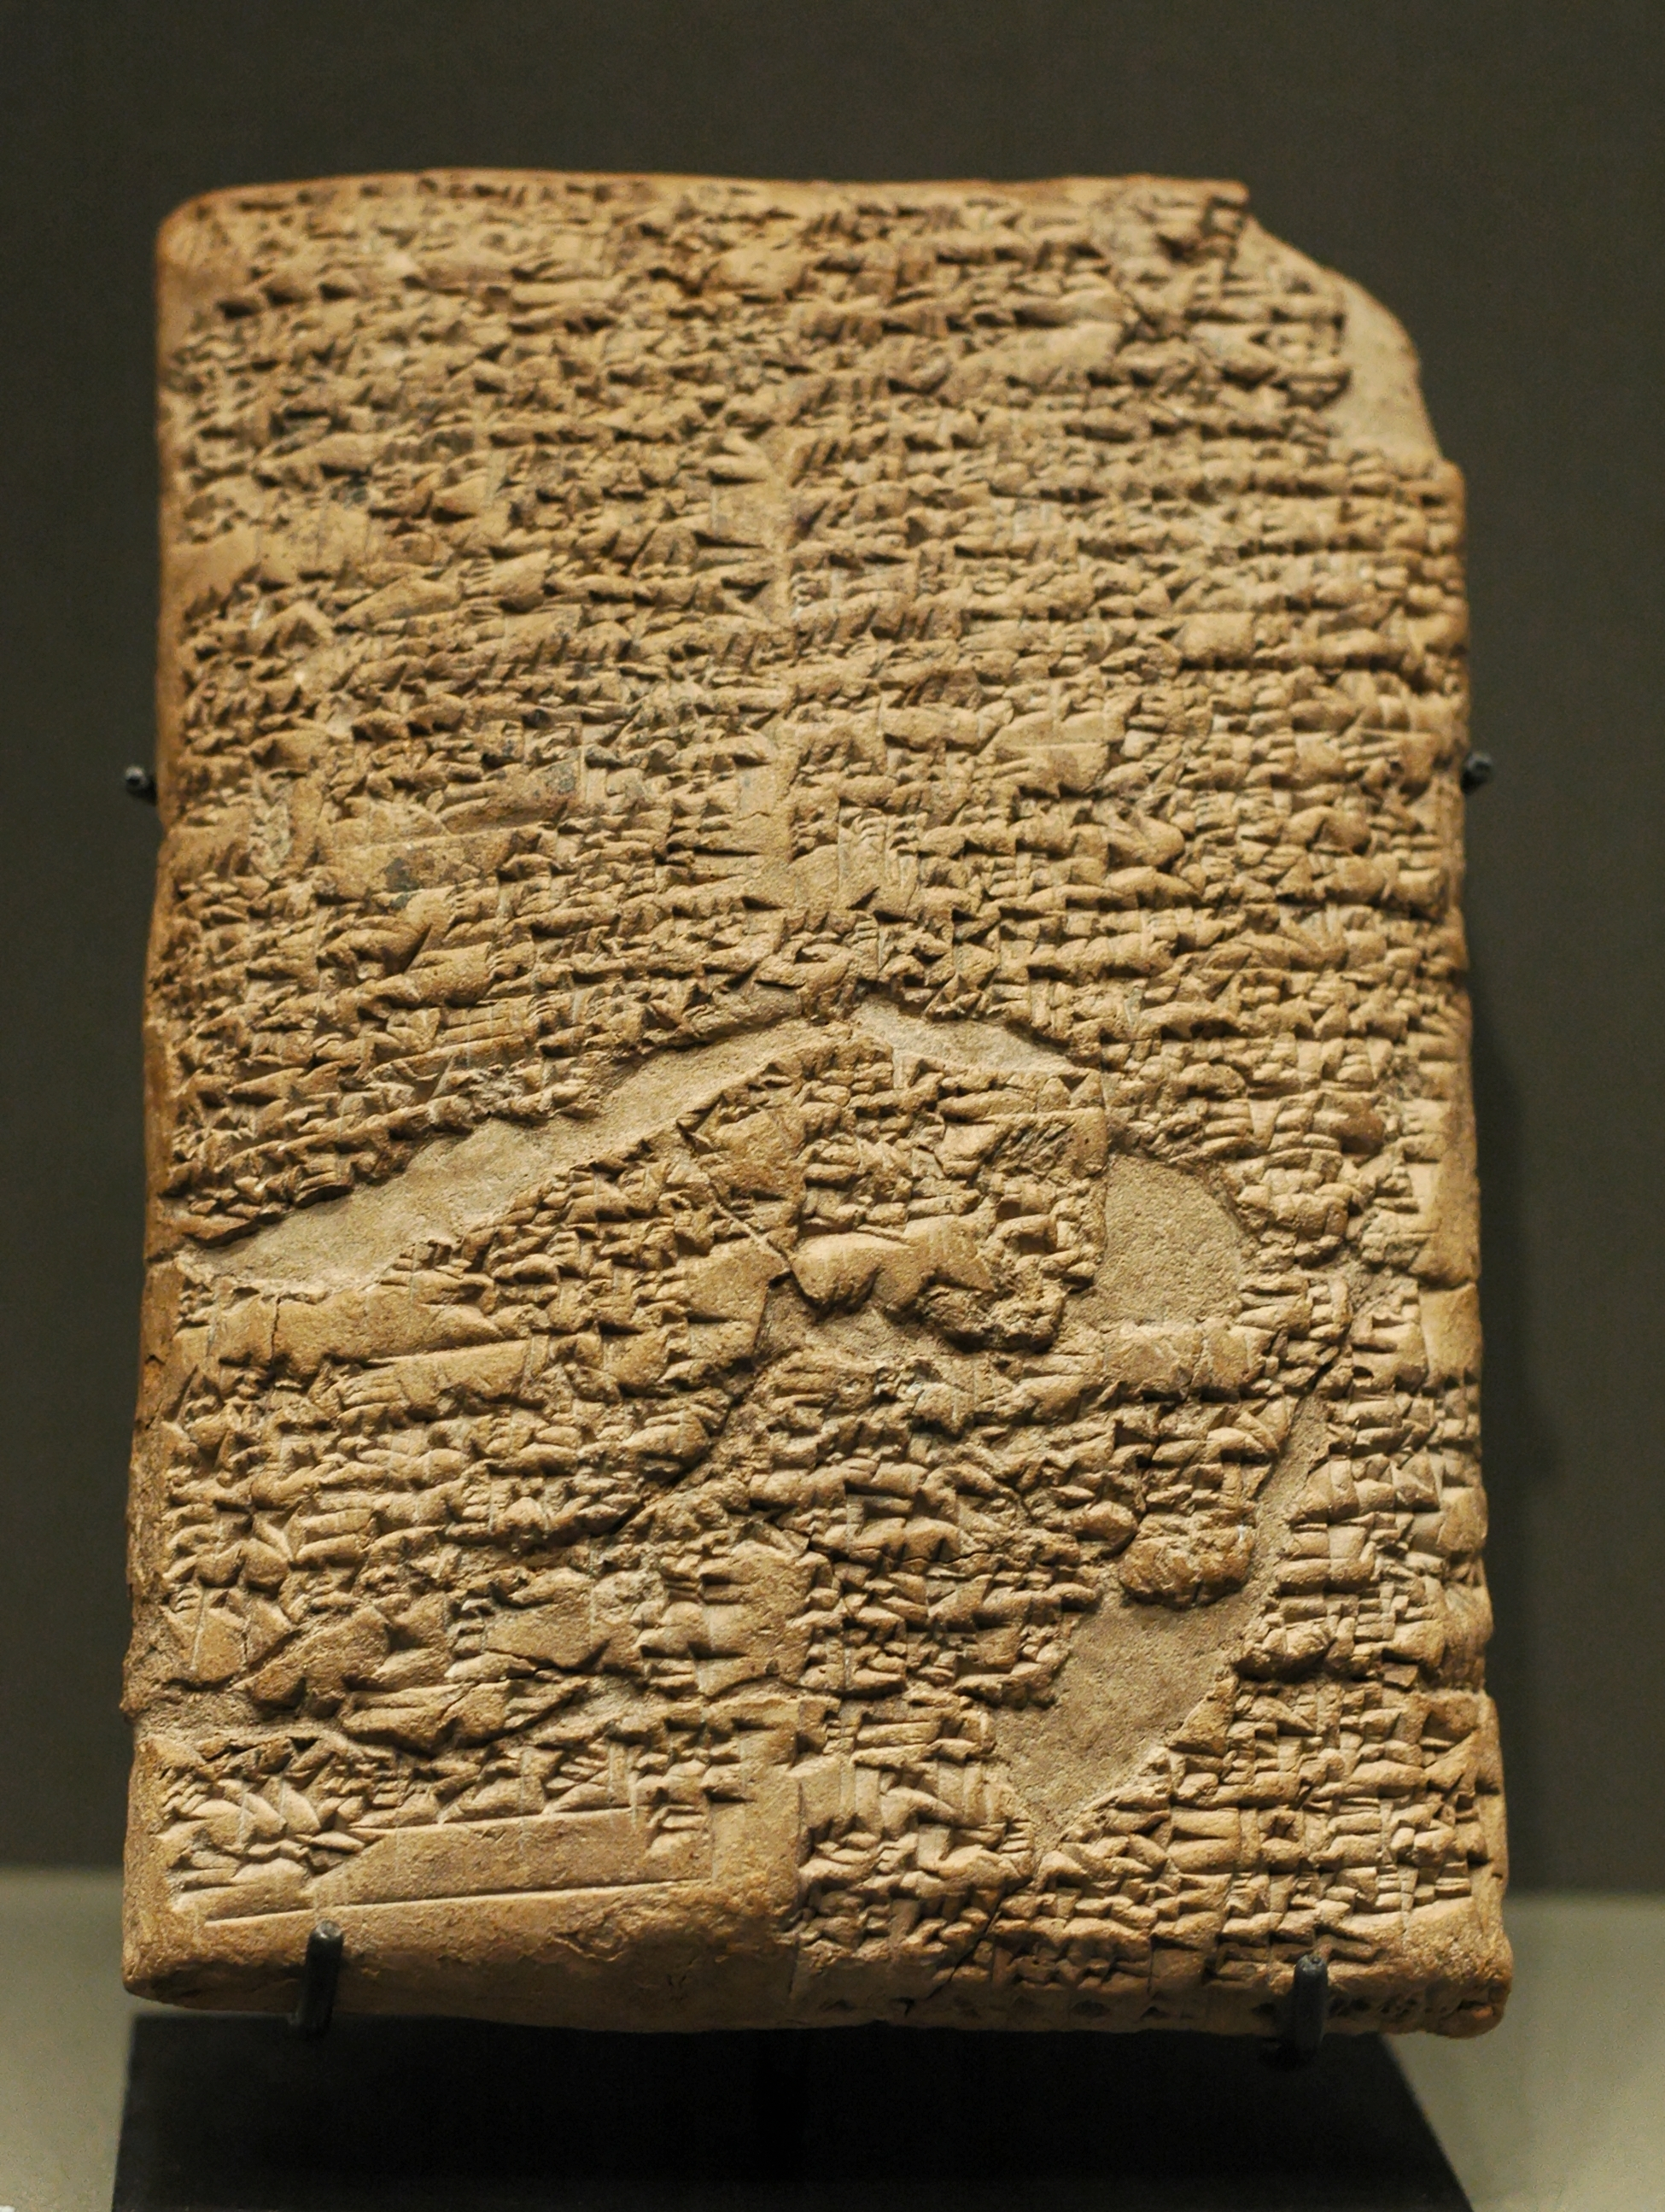 https://i0.wp.com/upload.wikimedia.org/wikipedia/commons/e/e8/Prologue_Hammurabi_Code_Louvre_AO10237.jpg